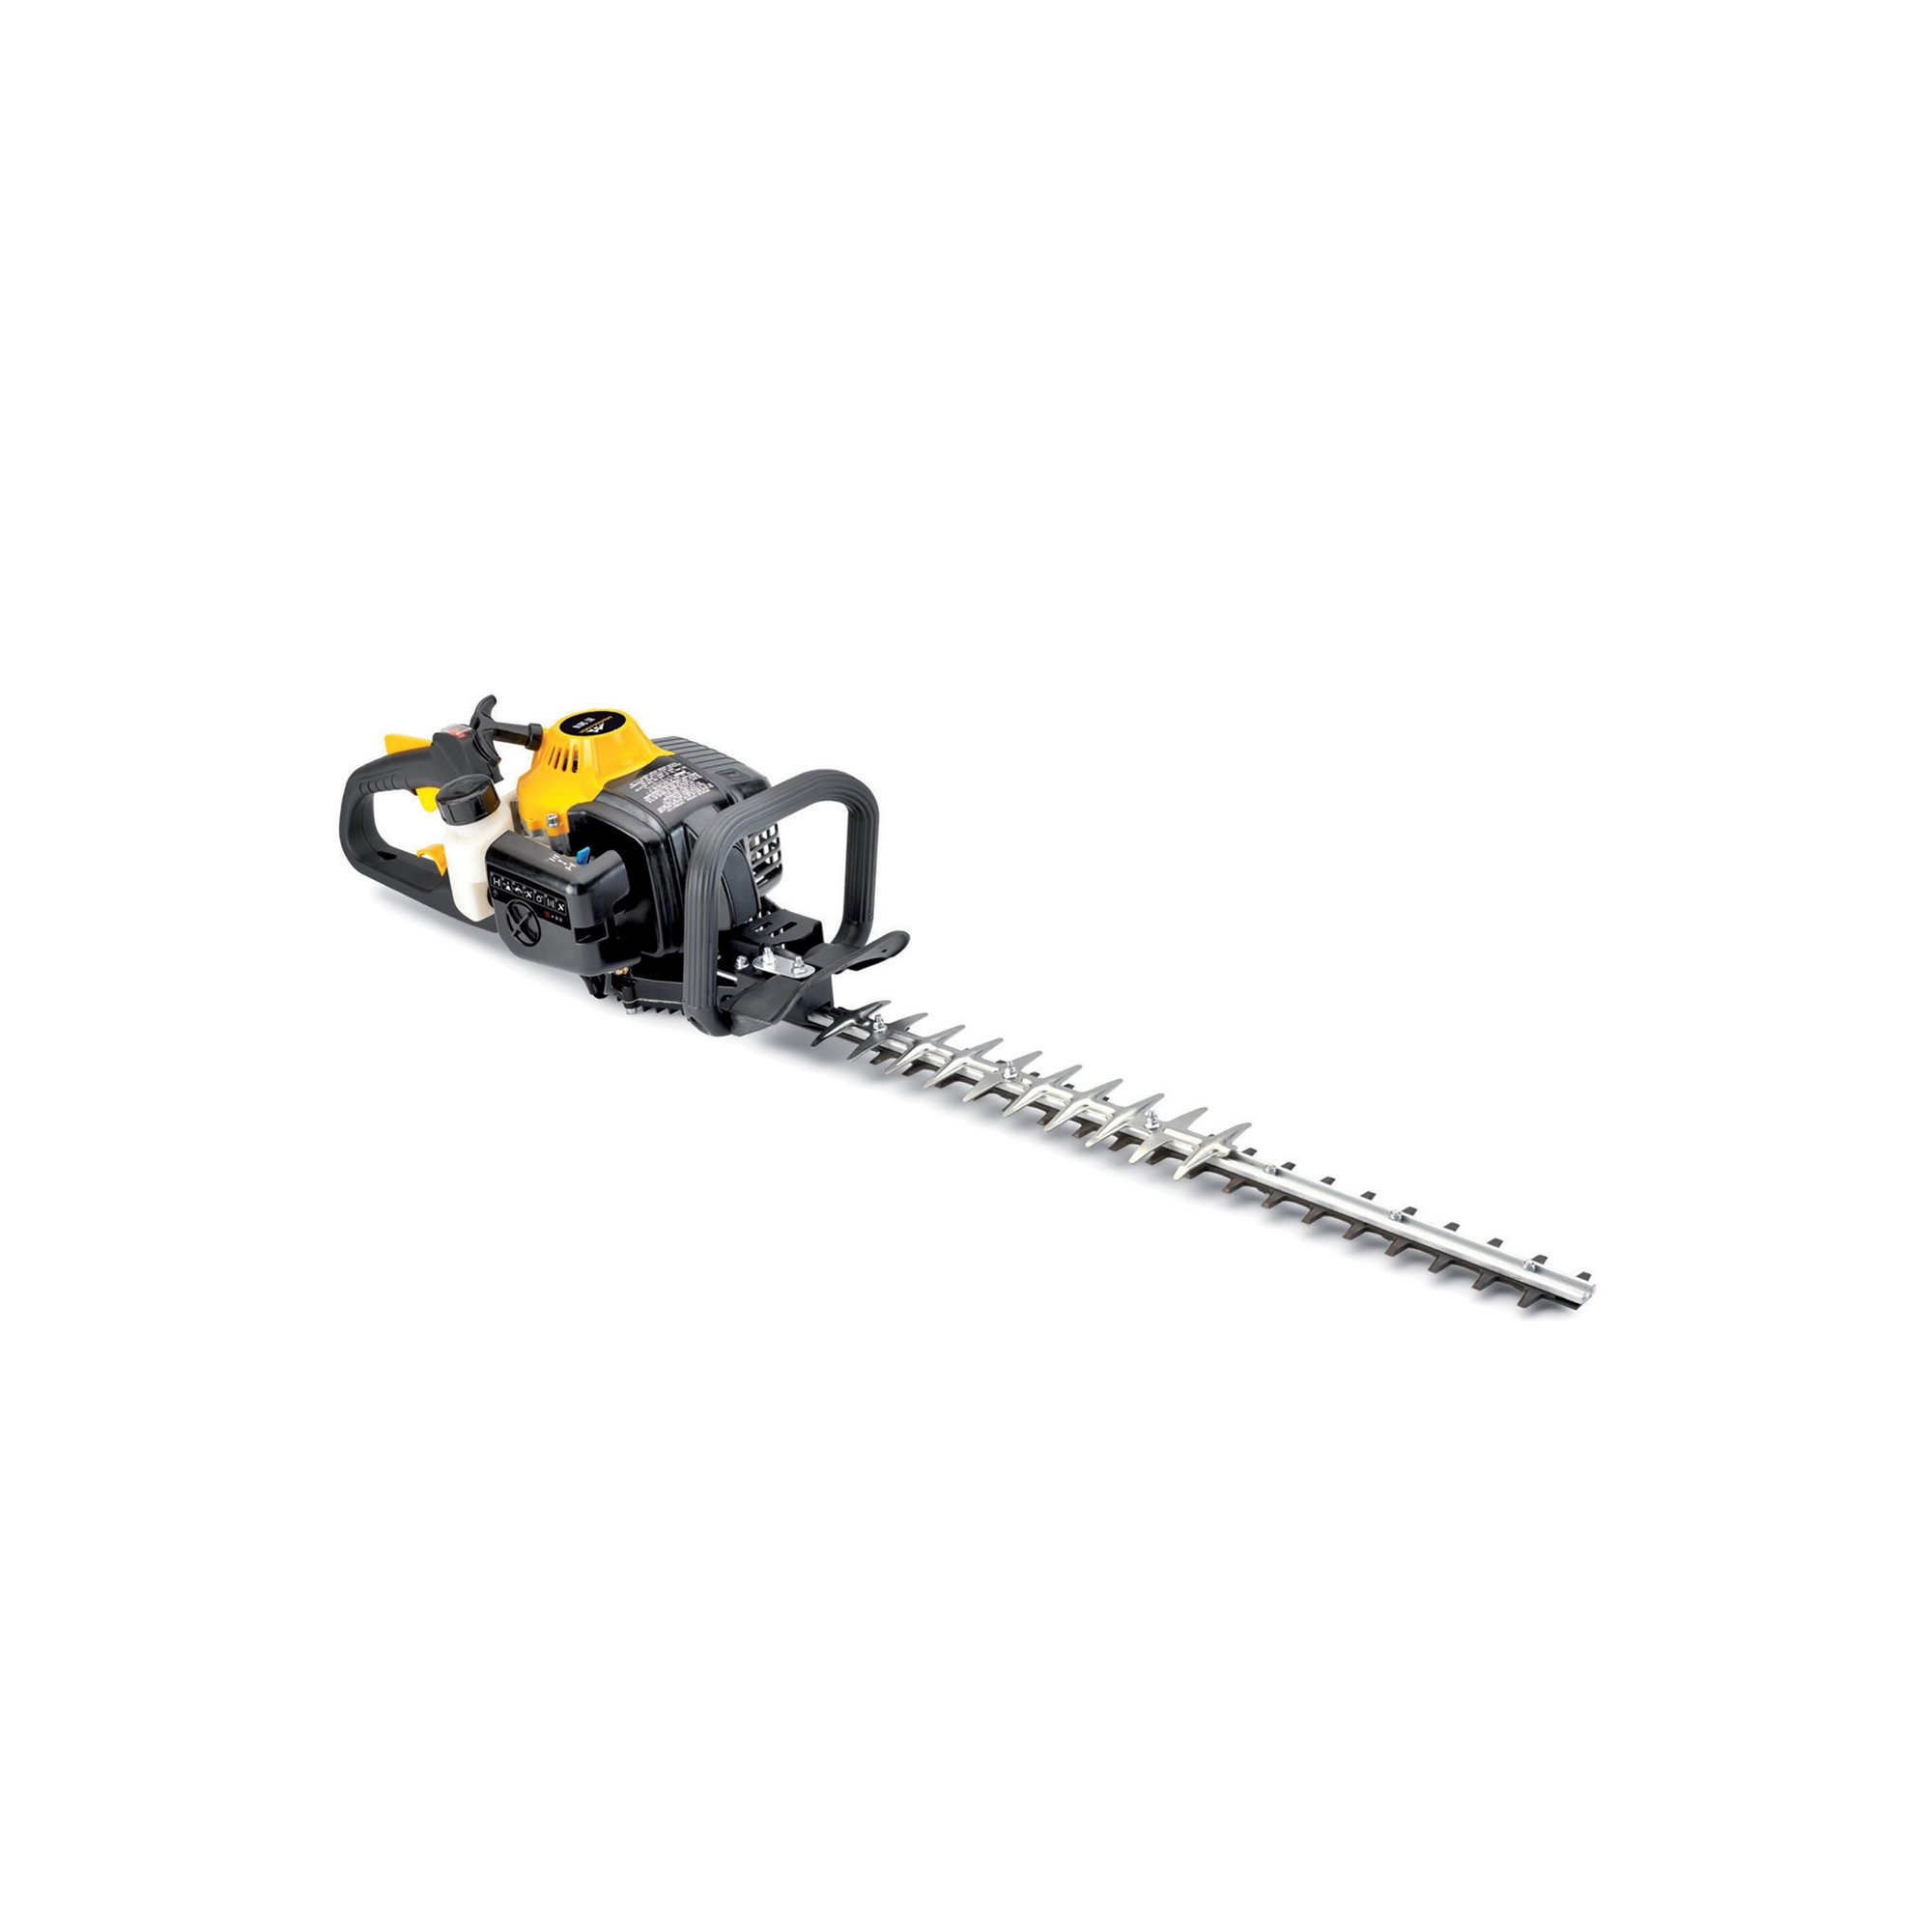 Image of McCulloch HT5622 Petrol Hedge Trimmer